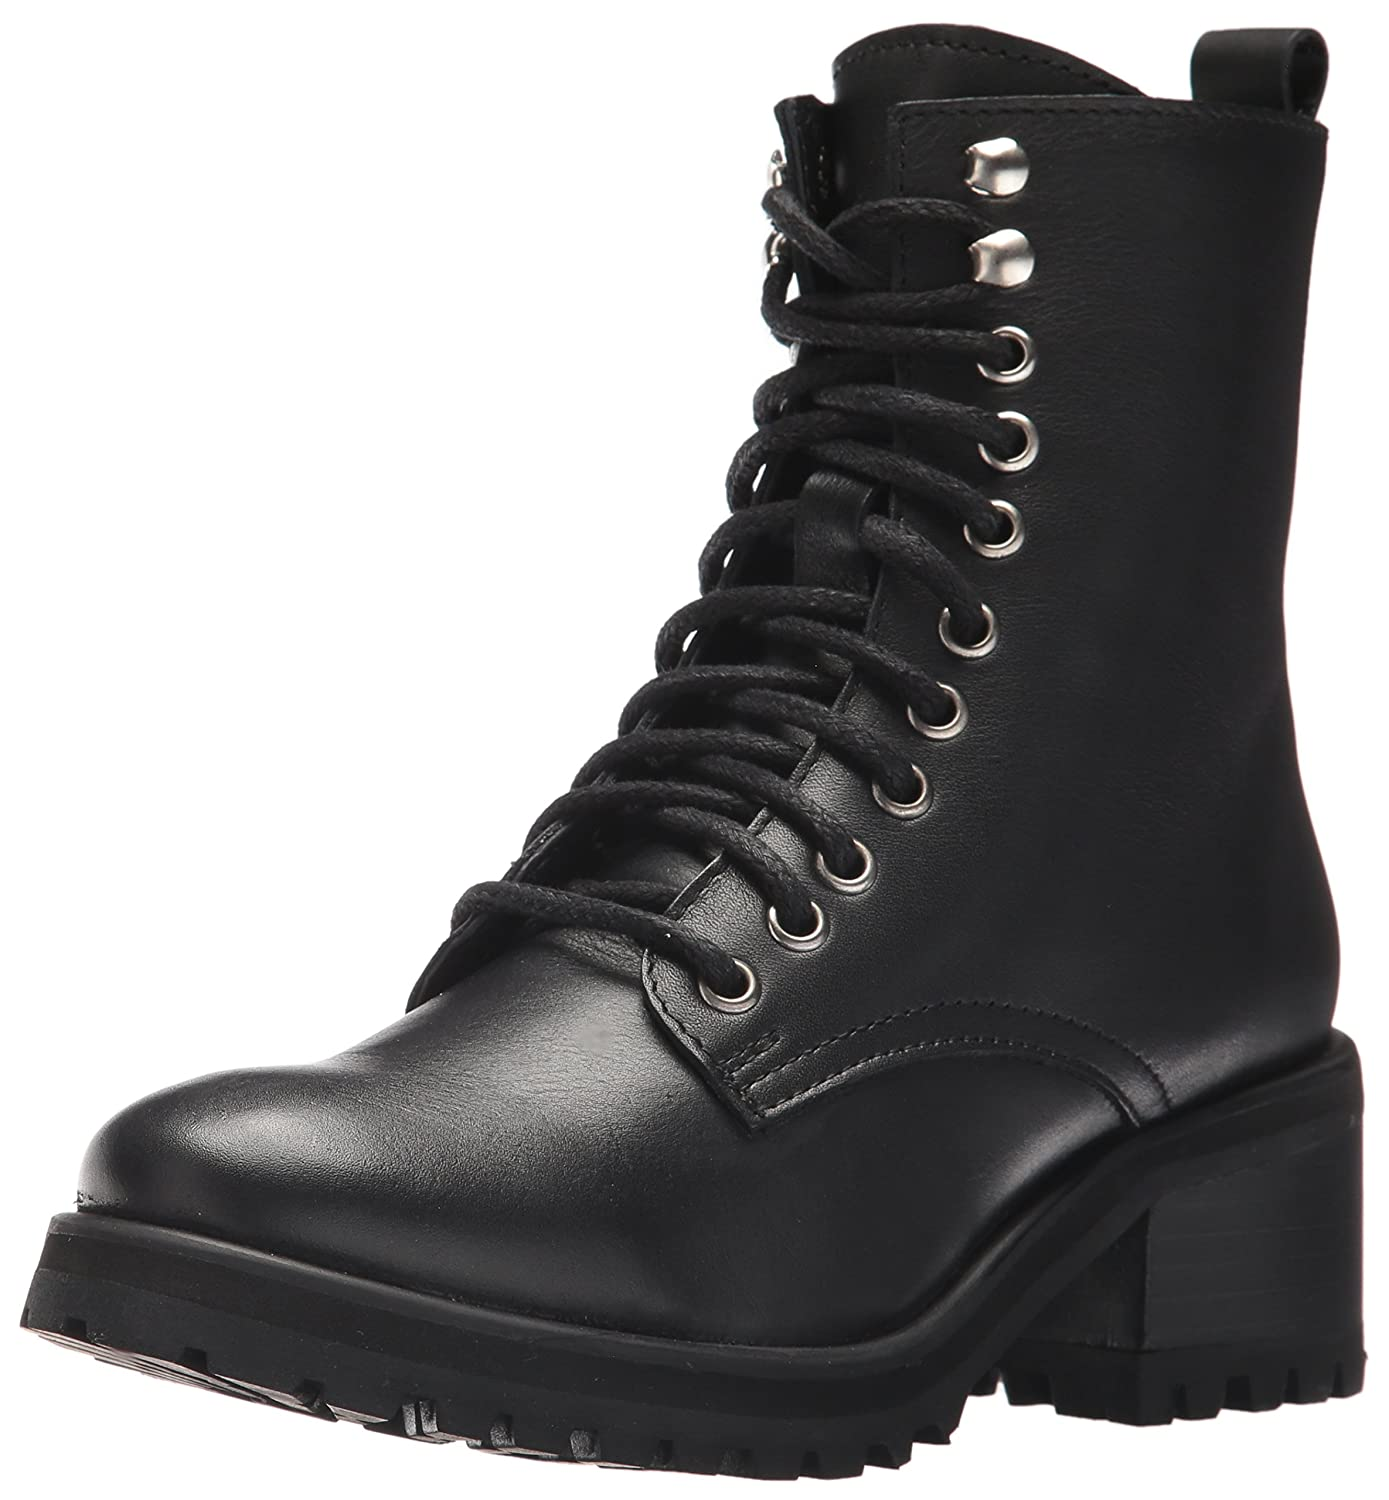 Steve Madden Women's Geneva Combat Boot B074PJGQ7W 11 B(M) US|Black Leather